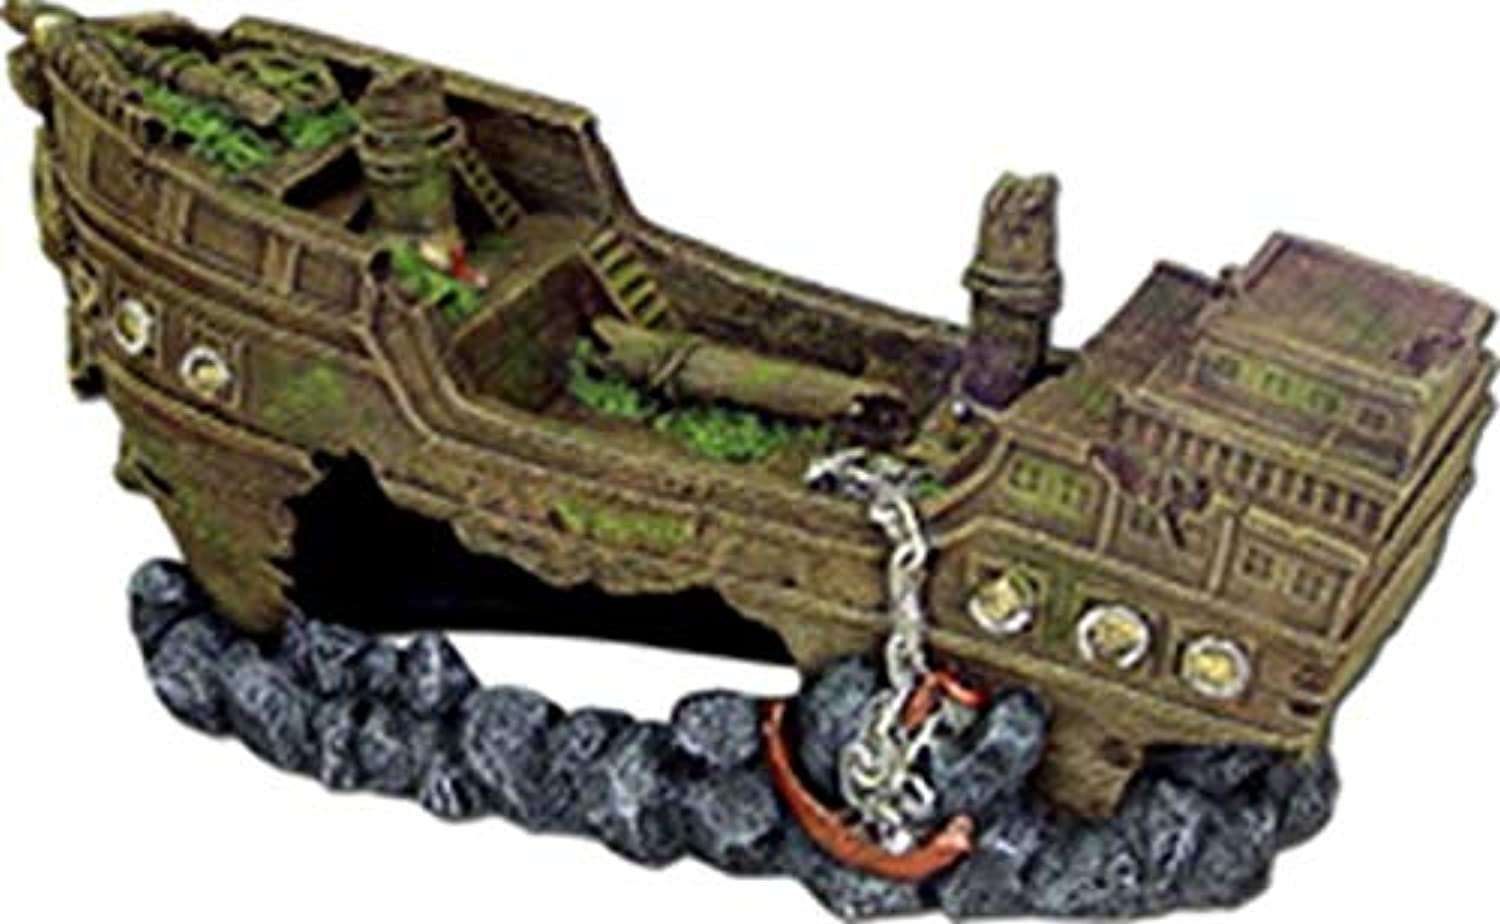 Exotic Environments Shipwreck Aquarium Ornament